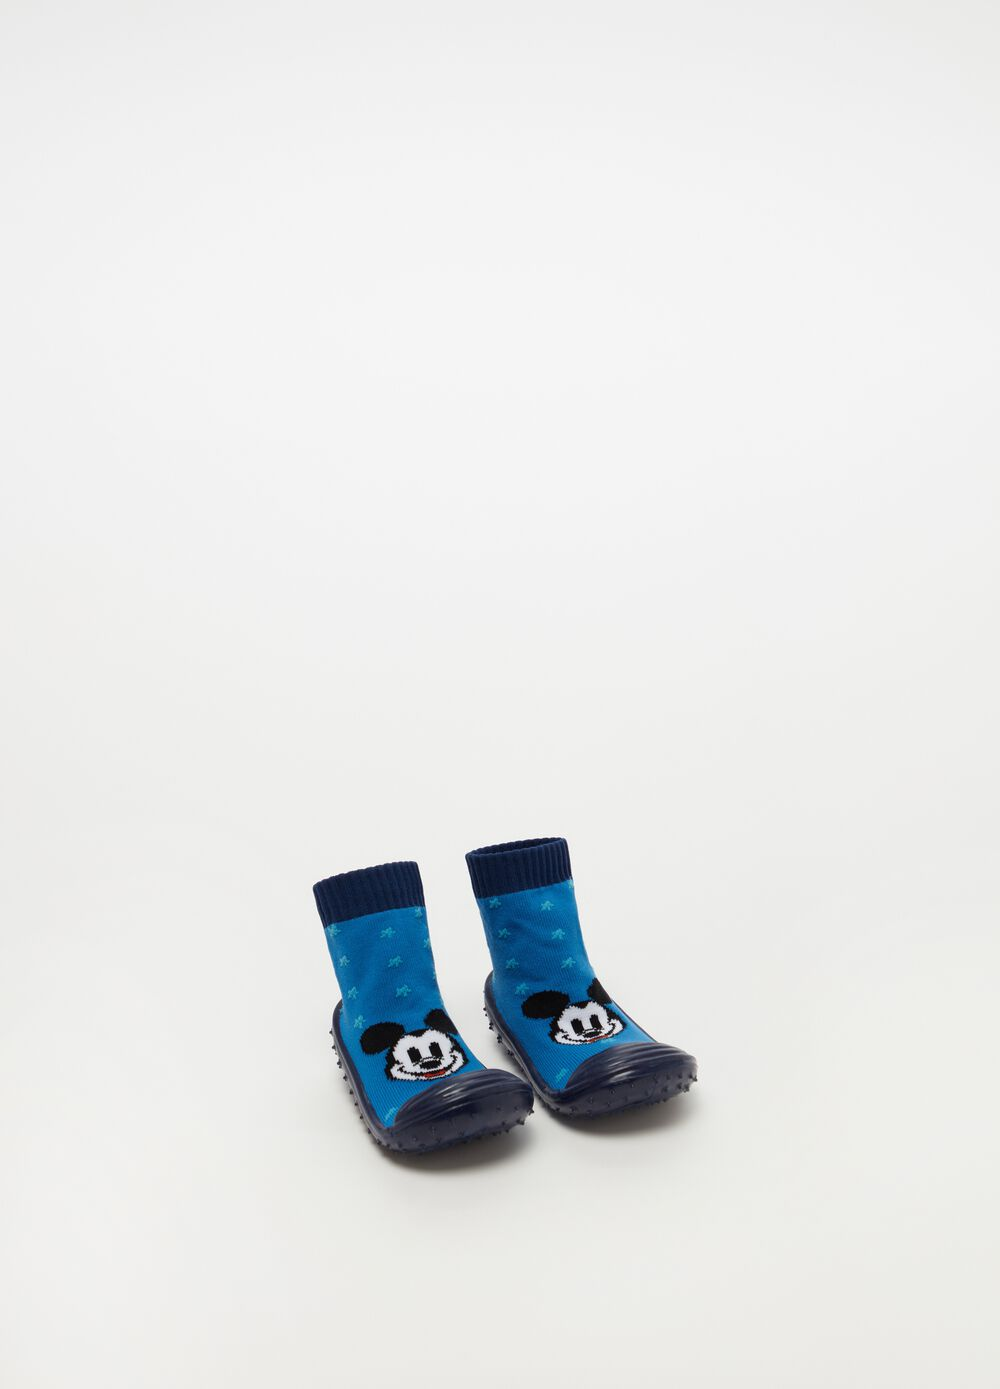 Shoes with stars and Mickey Mouse pattern